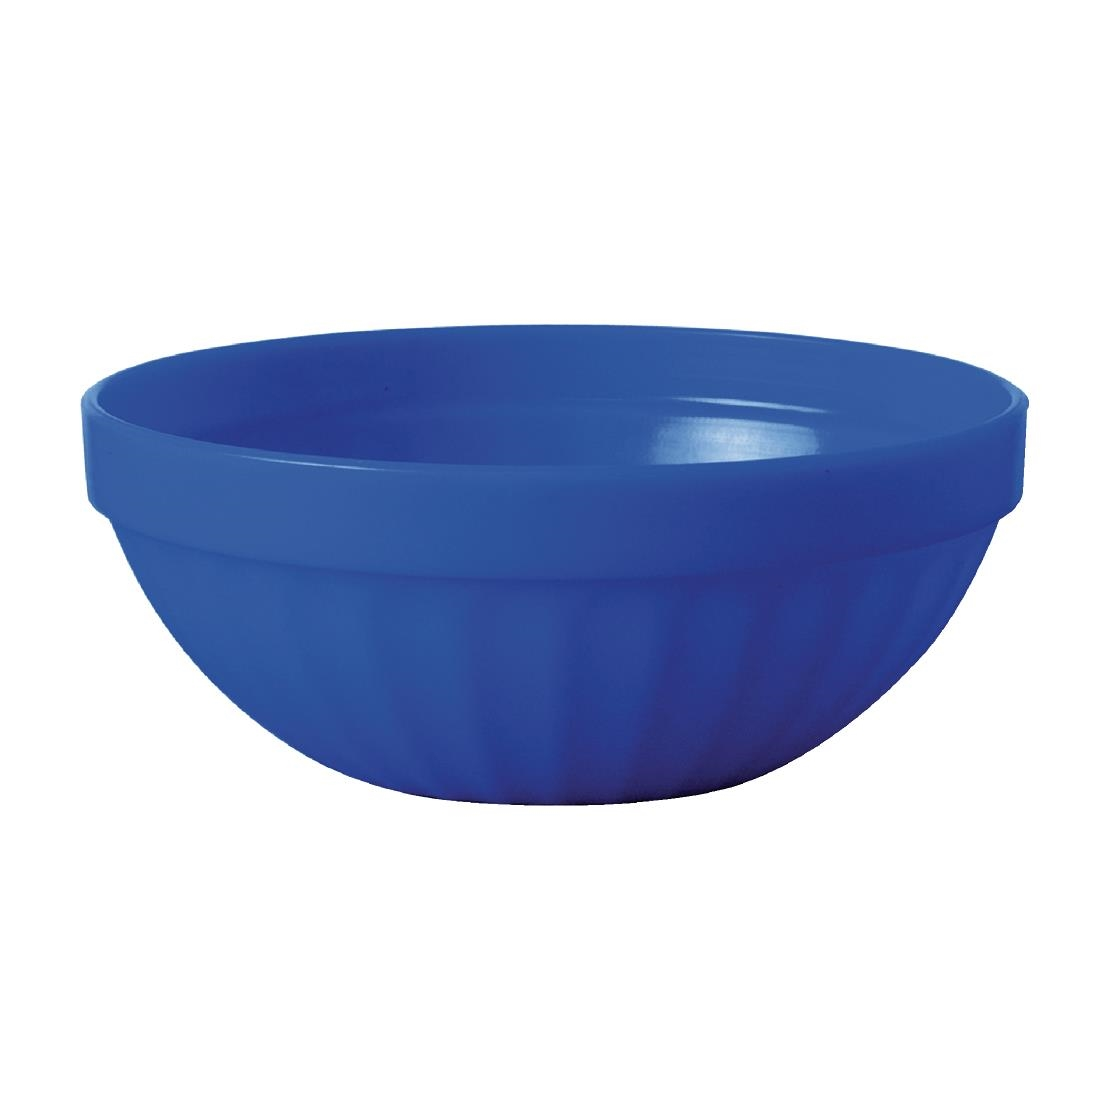 Small Bowl - Blue